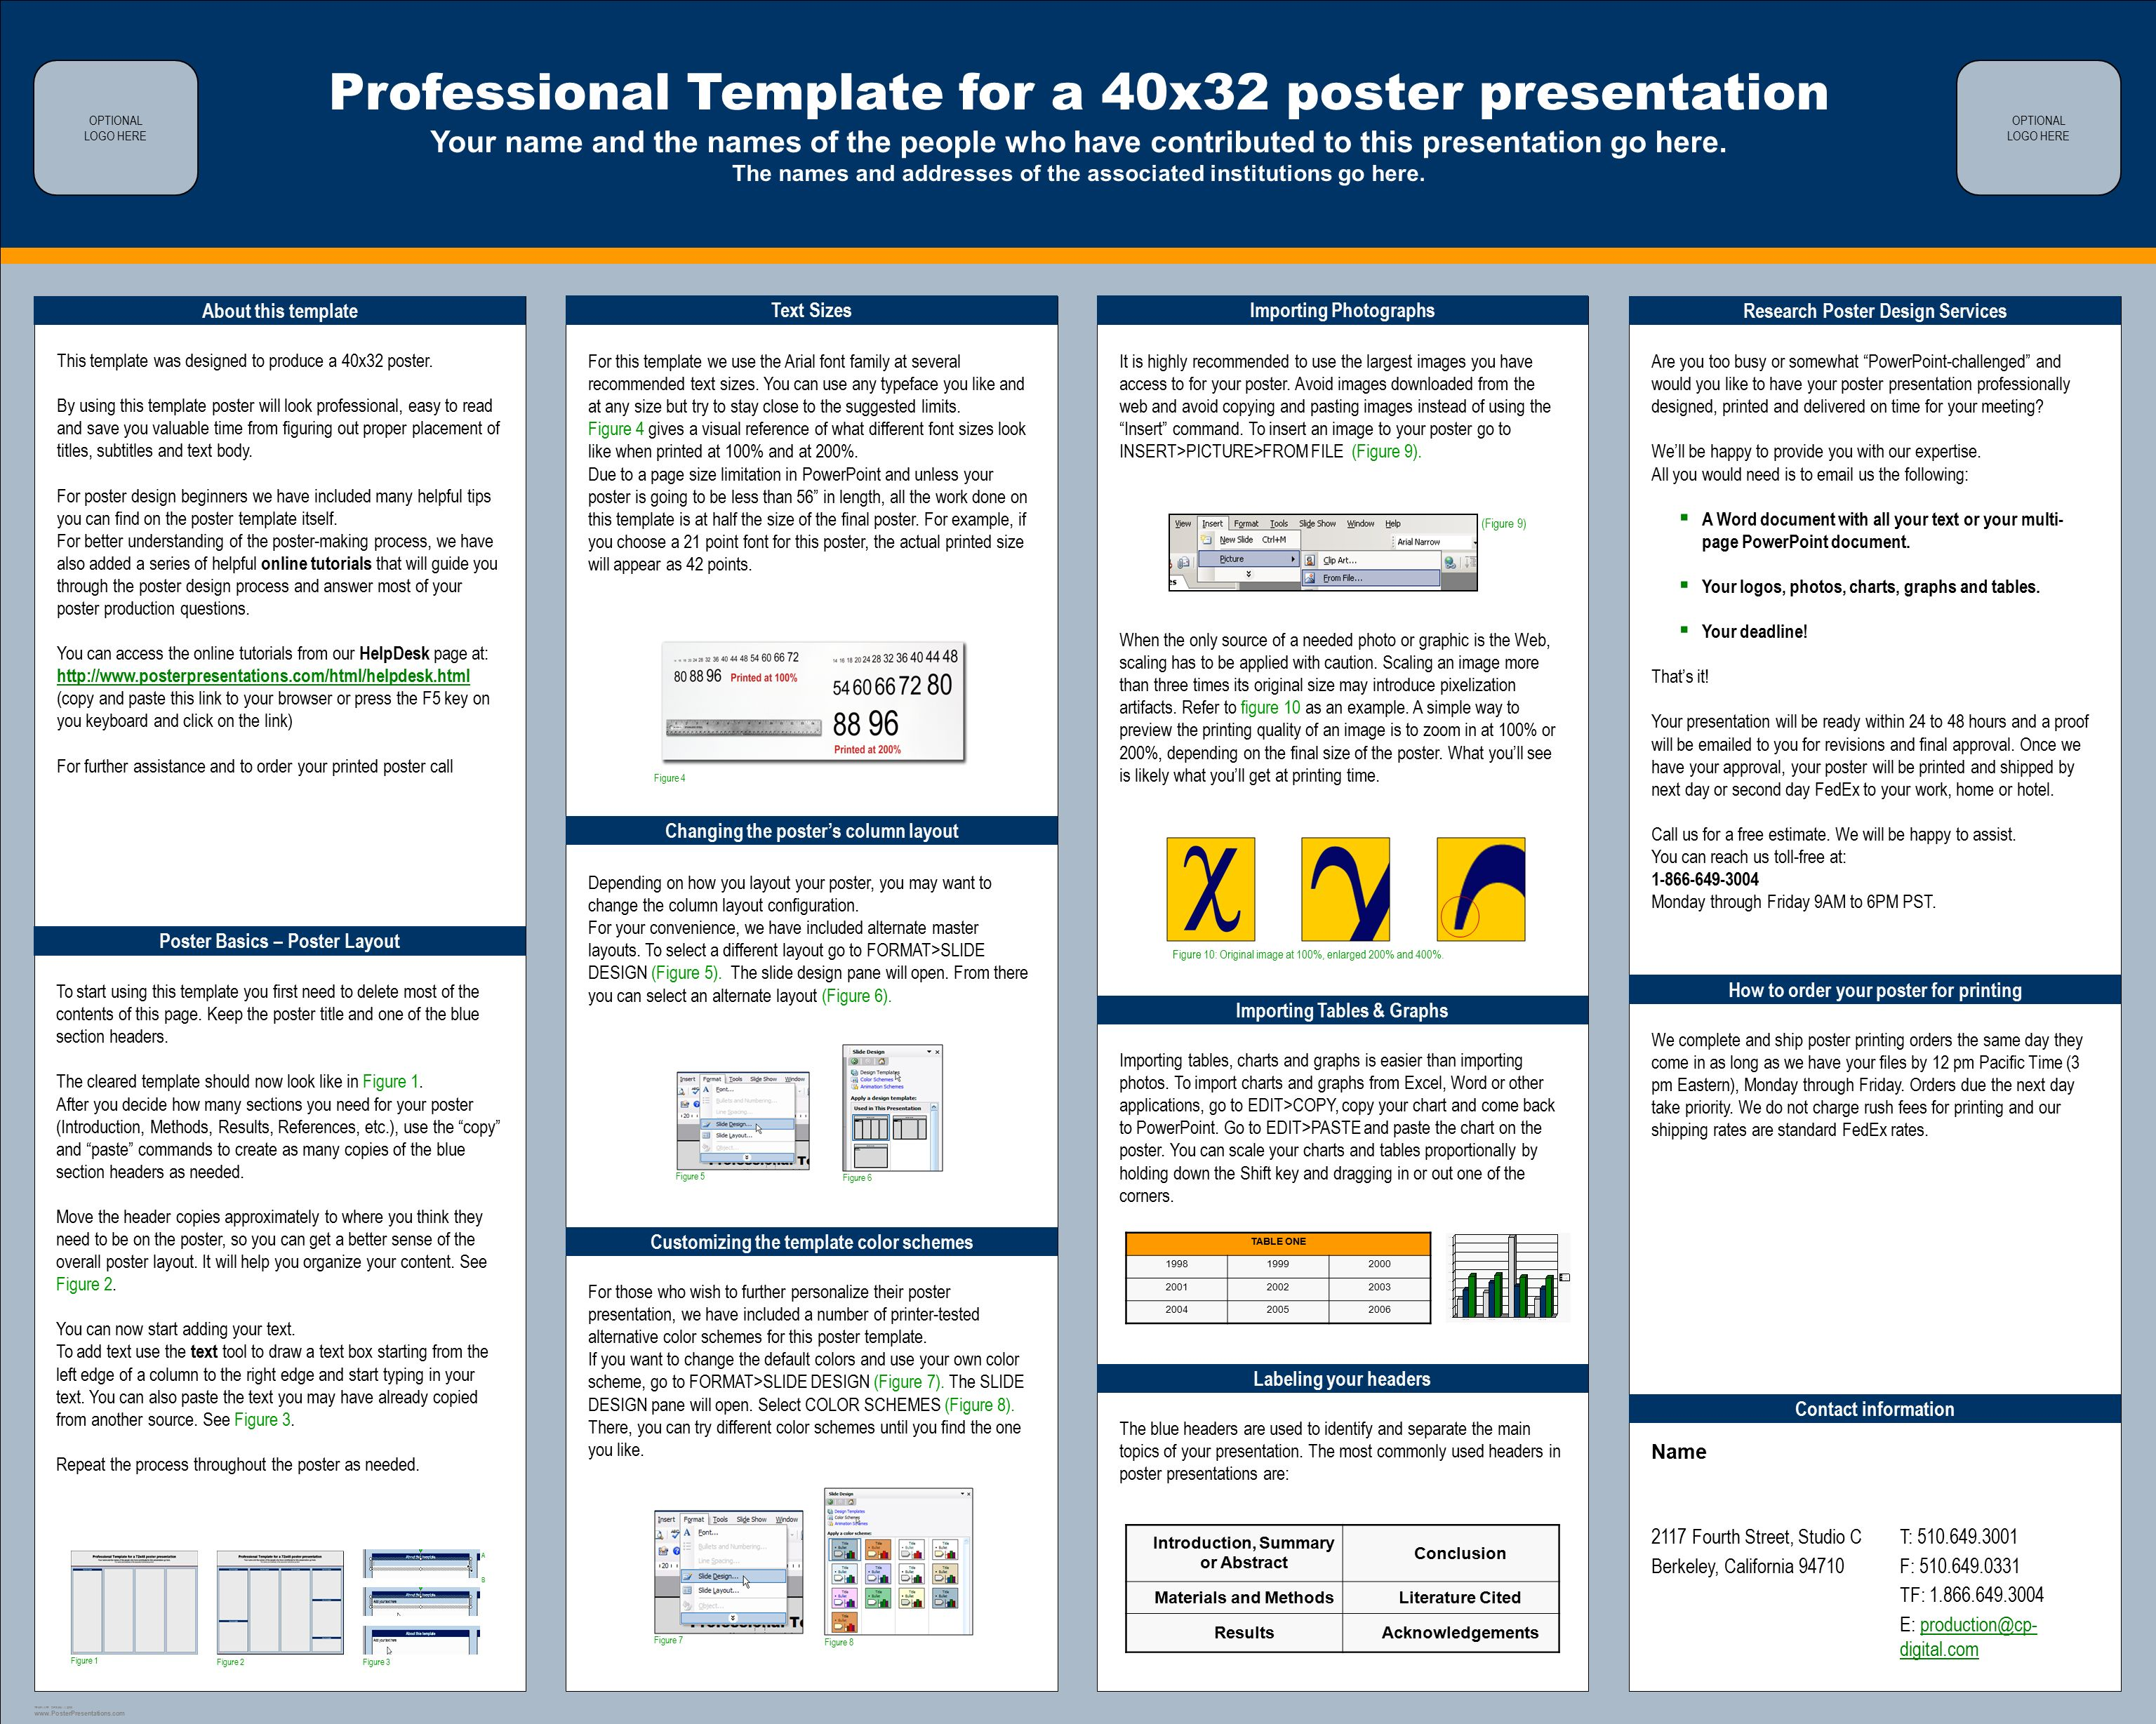 posterpresentations com templates - professional template for a 40x32 poster presentation